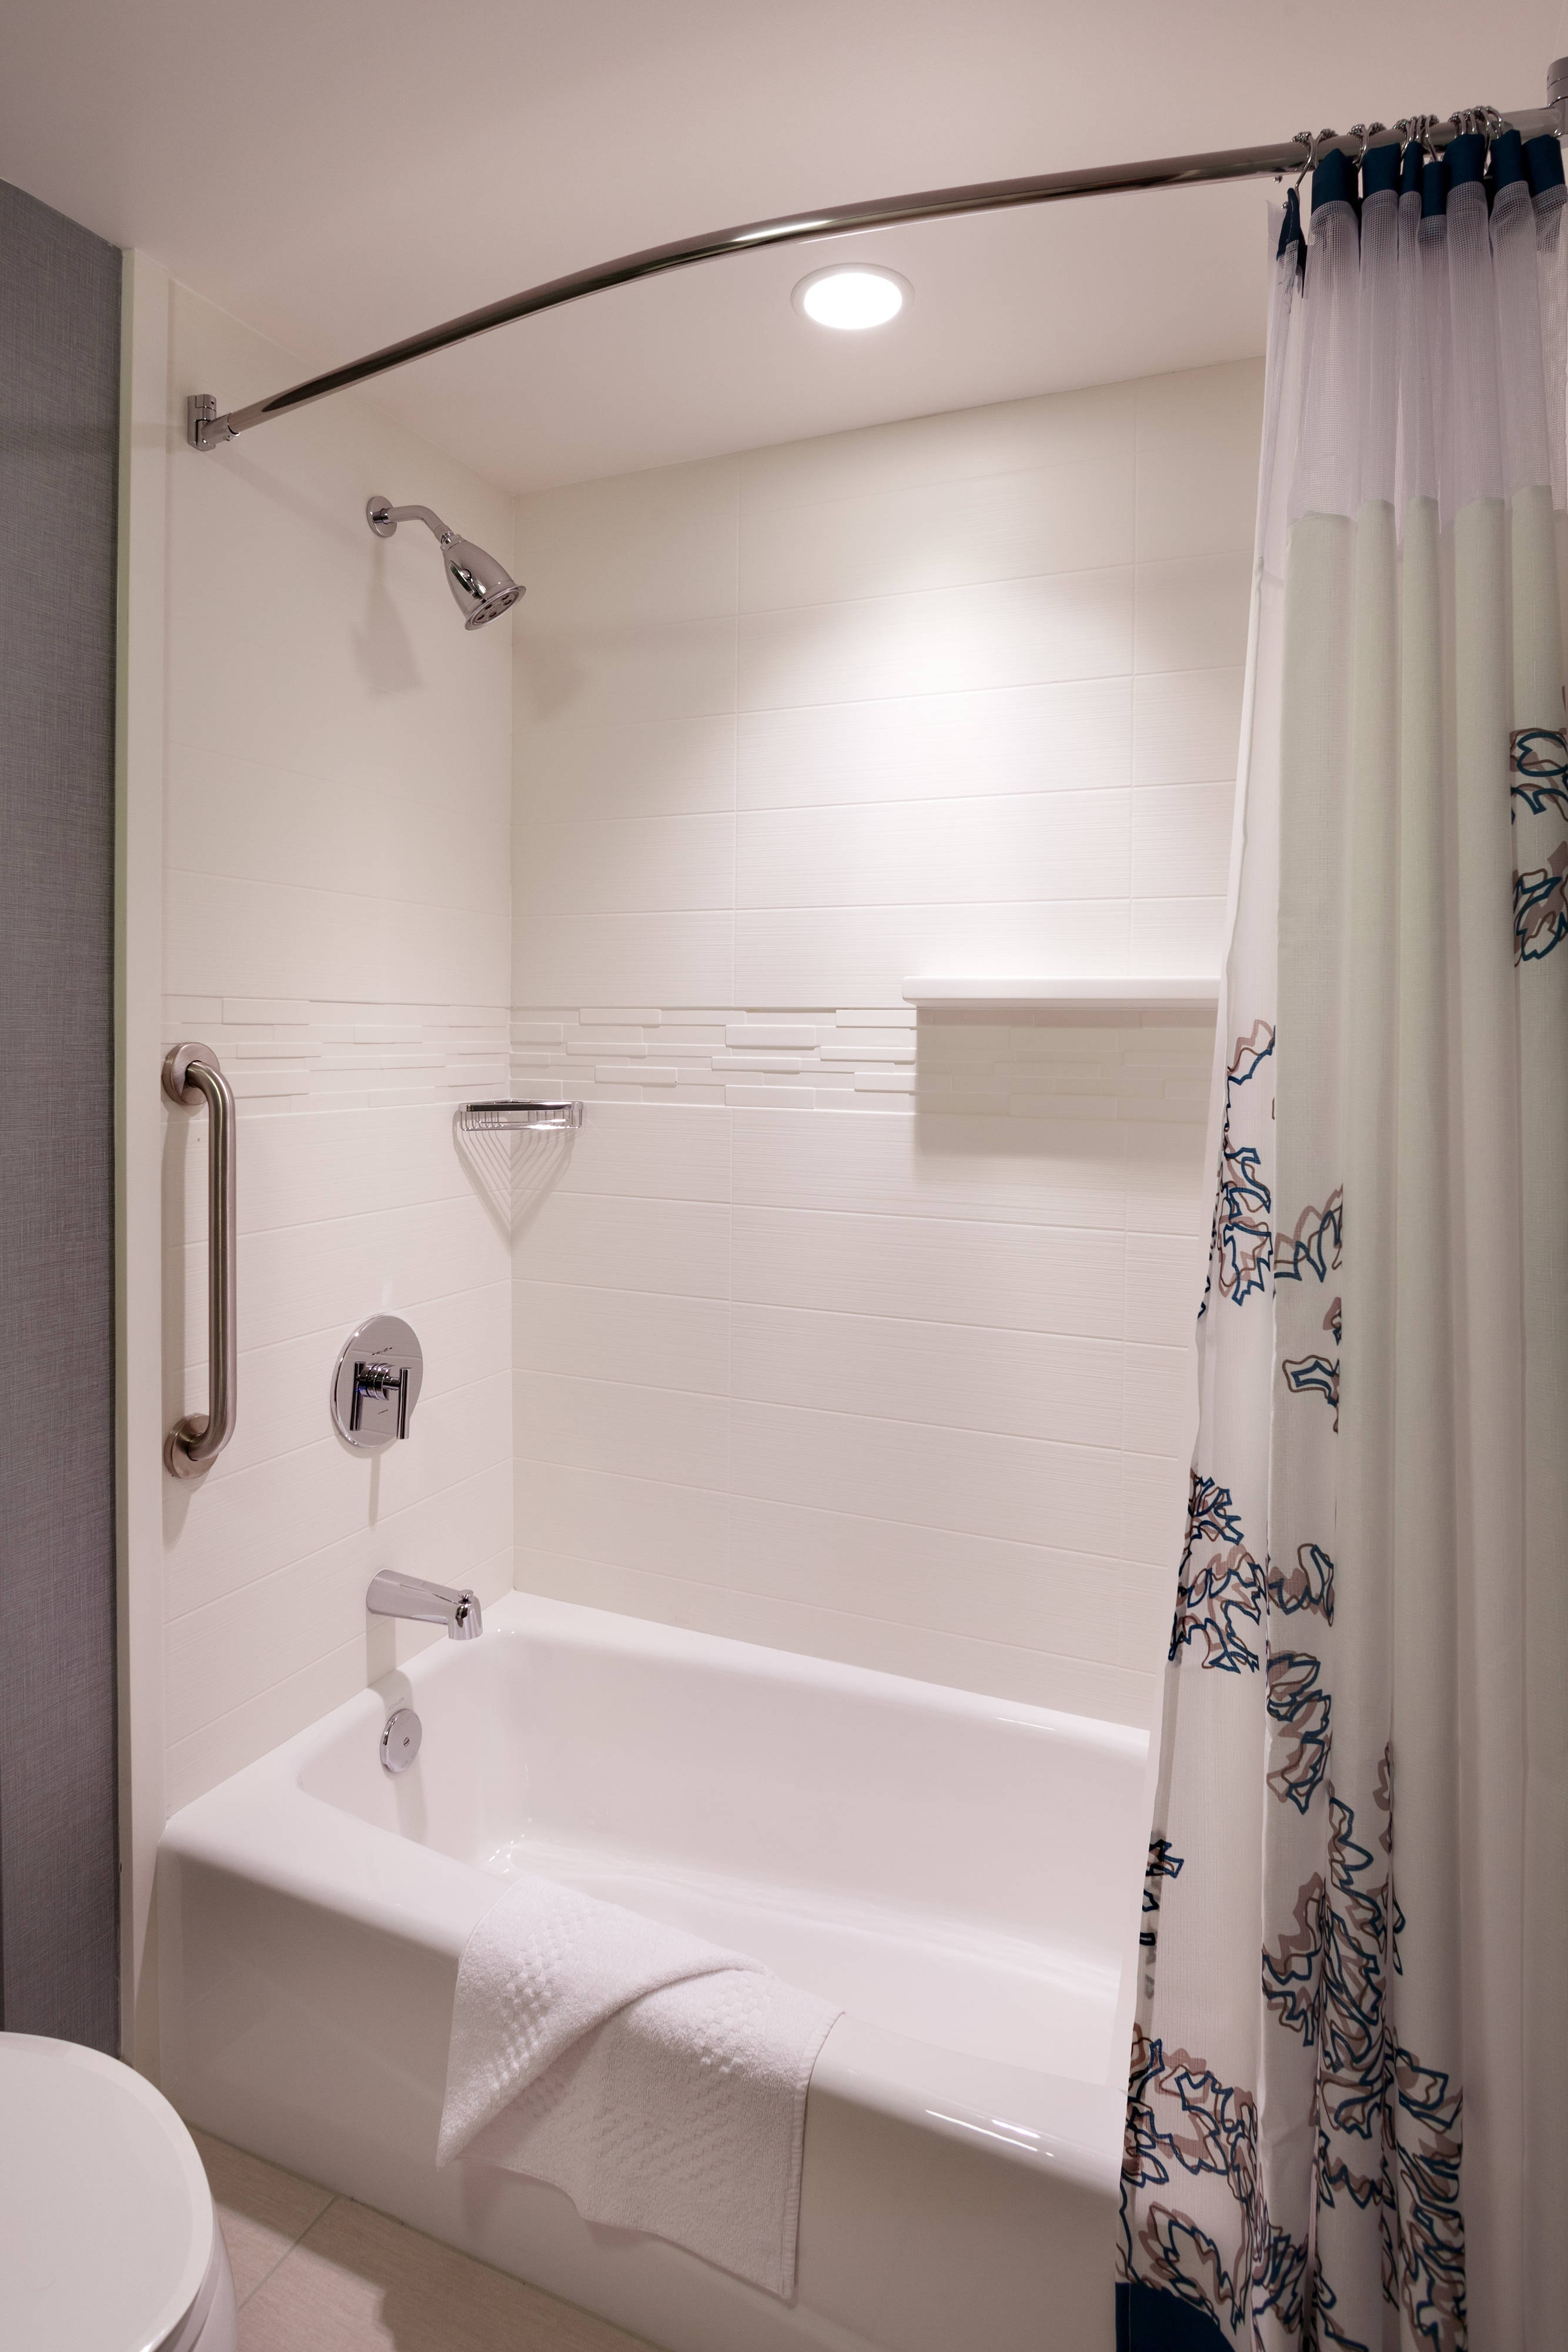 Suite Bathroom – Tub/Shower Combination